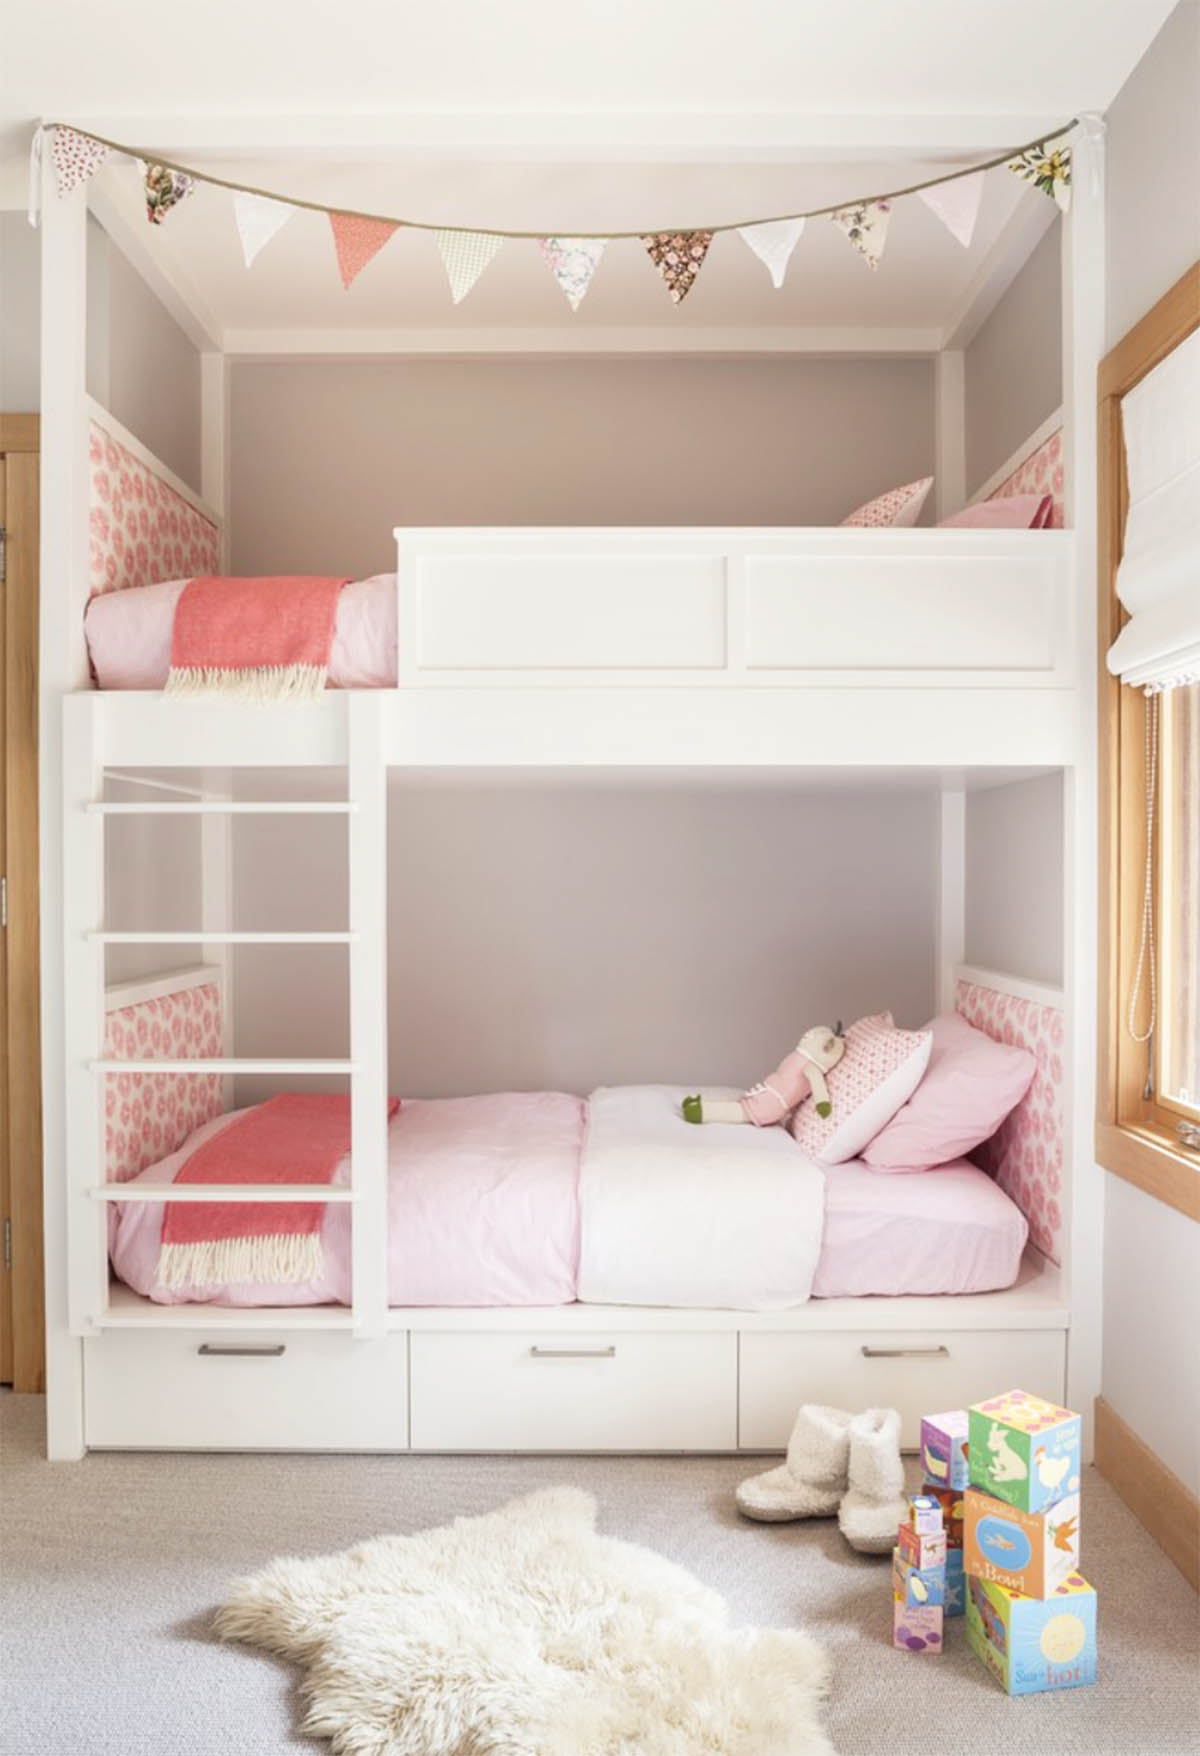 Bunk Bed Designs For Kids Room: INSPIRATION: SHARED KIDS' ROOMS WITH BUNK BEDS